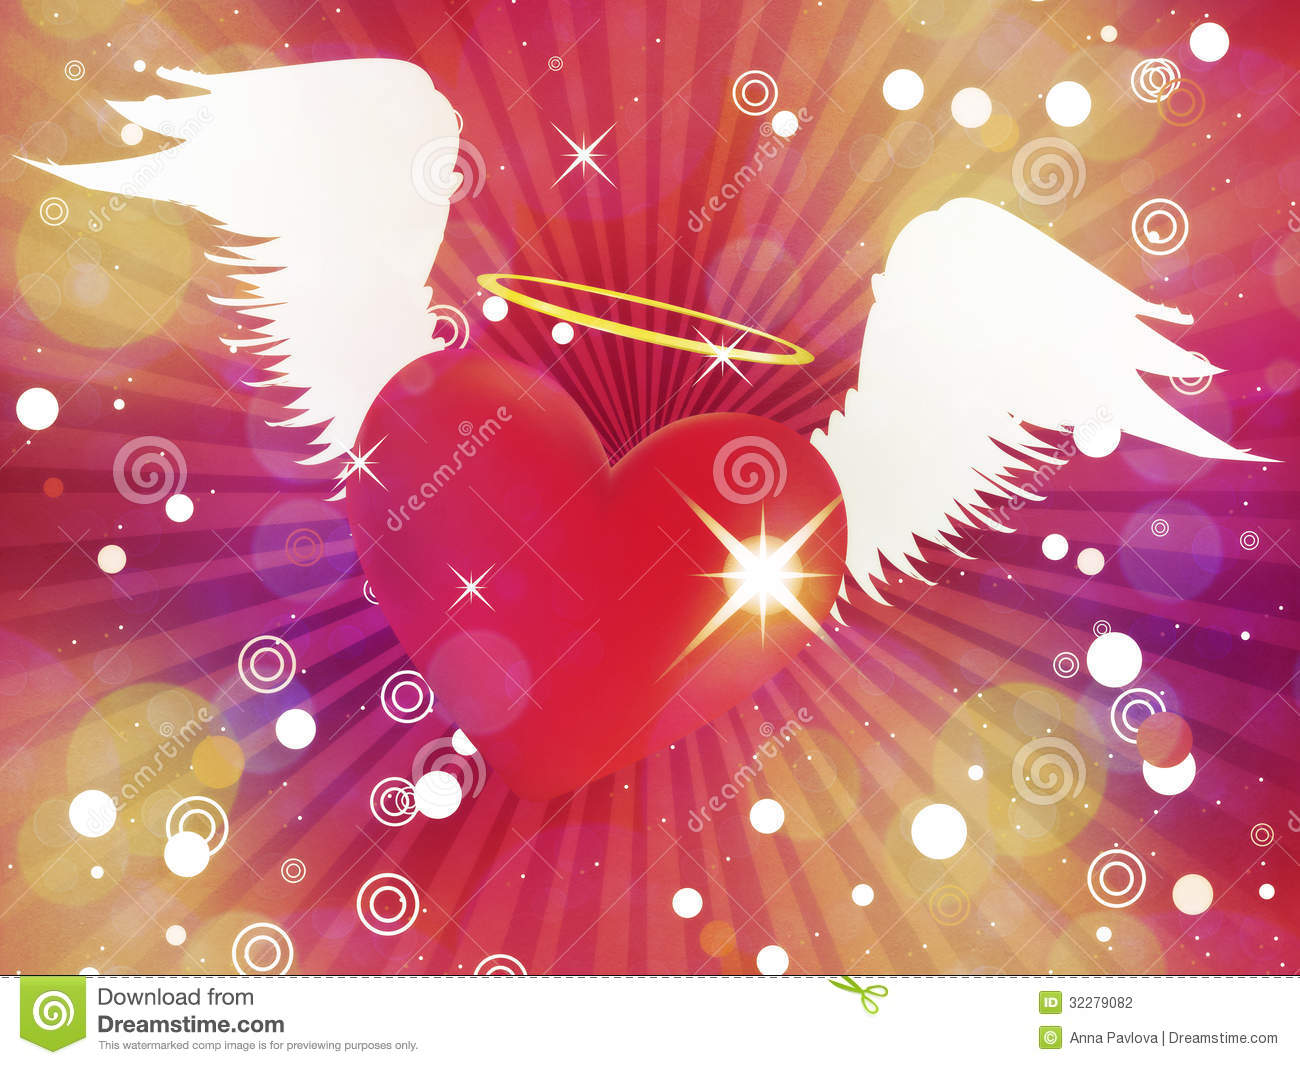 Cool Hearts With Angel Wings Shiny heart with angel wings